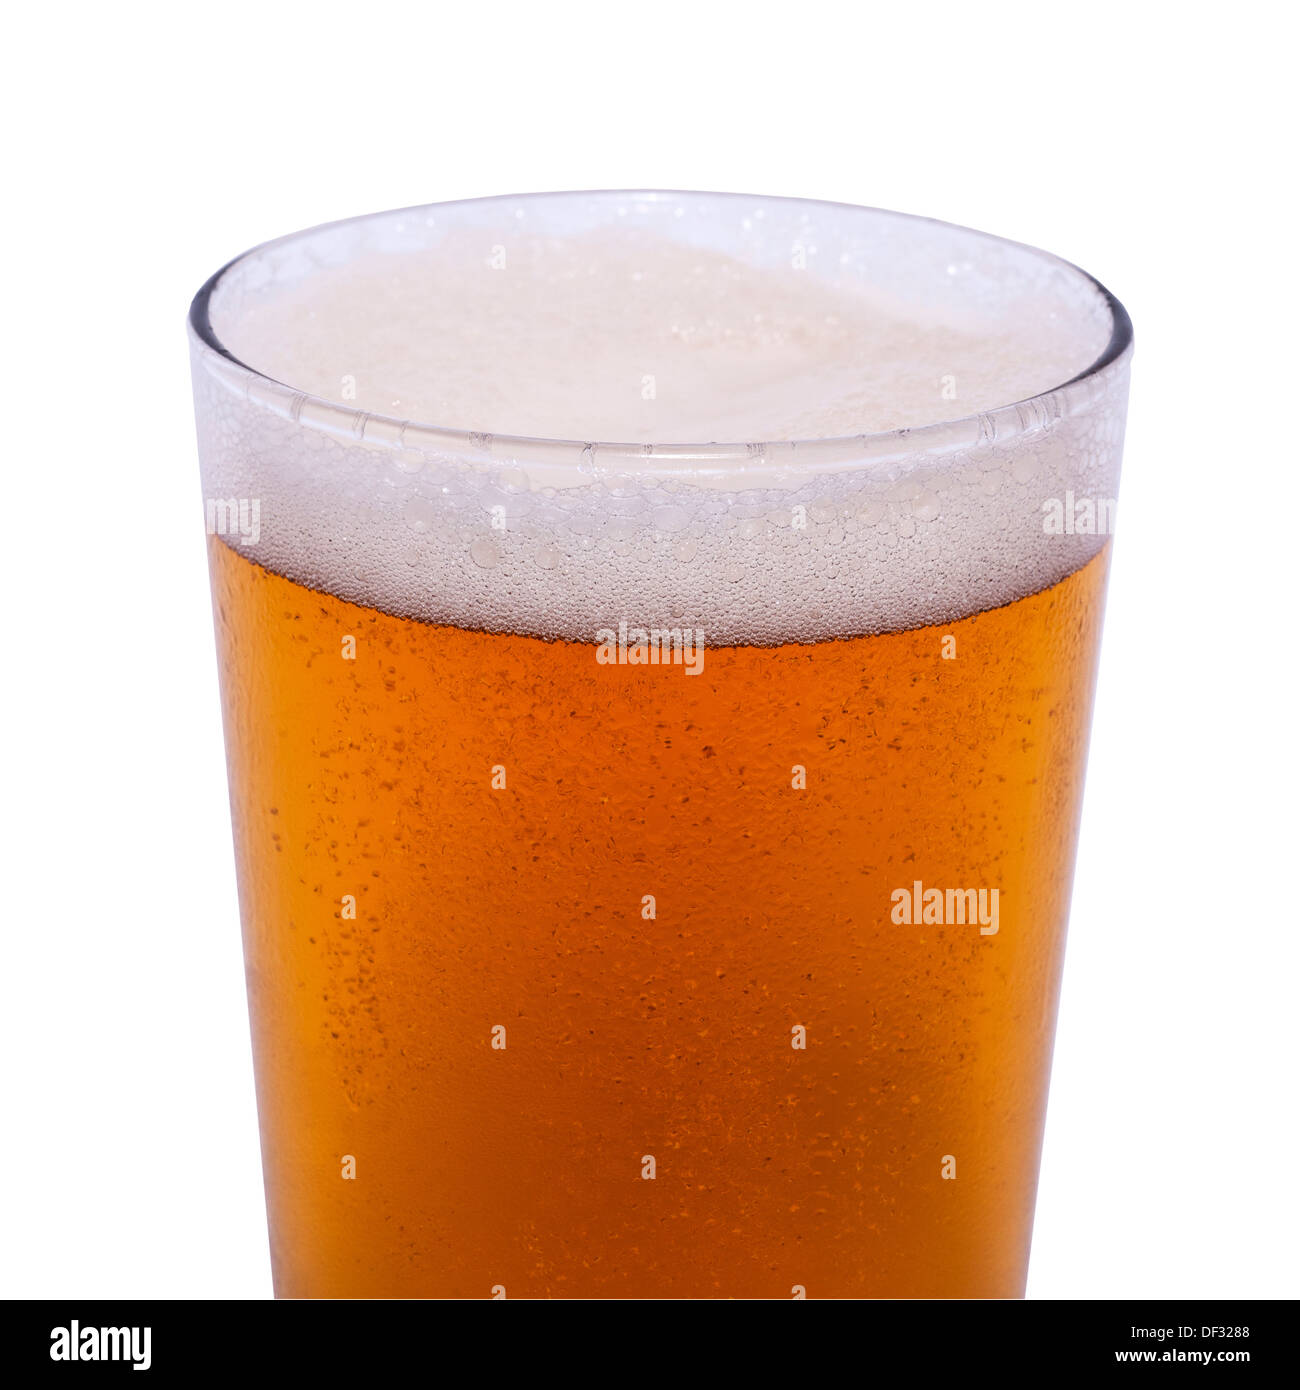 A pint of lager on a white background - Stock Image